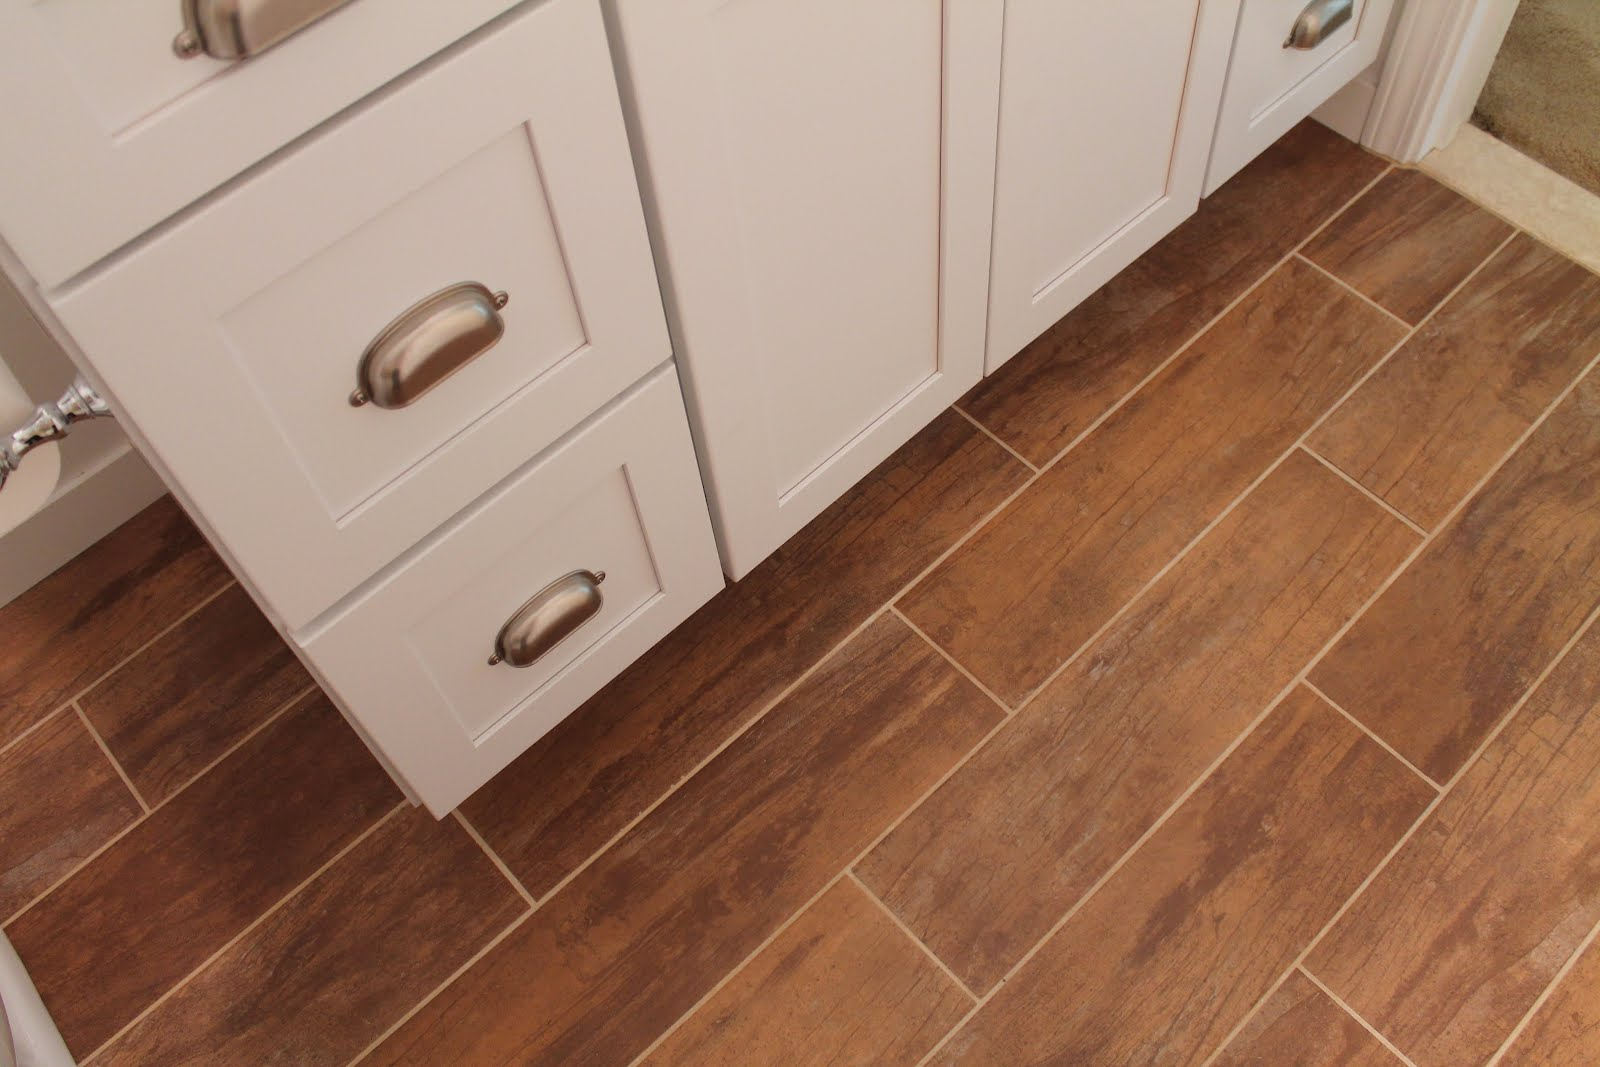 21 Woodgrain Tile Used In Bathroom Remodel, By Elizabeth And Co Featured On  @Remodelaholic